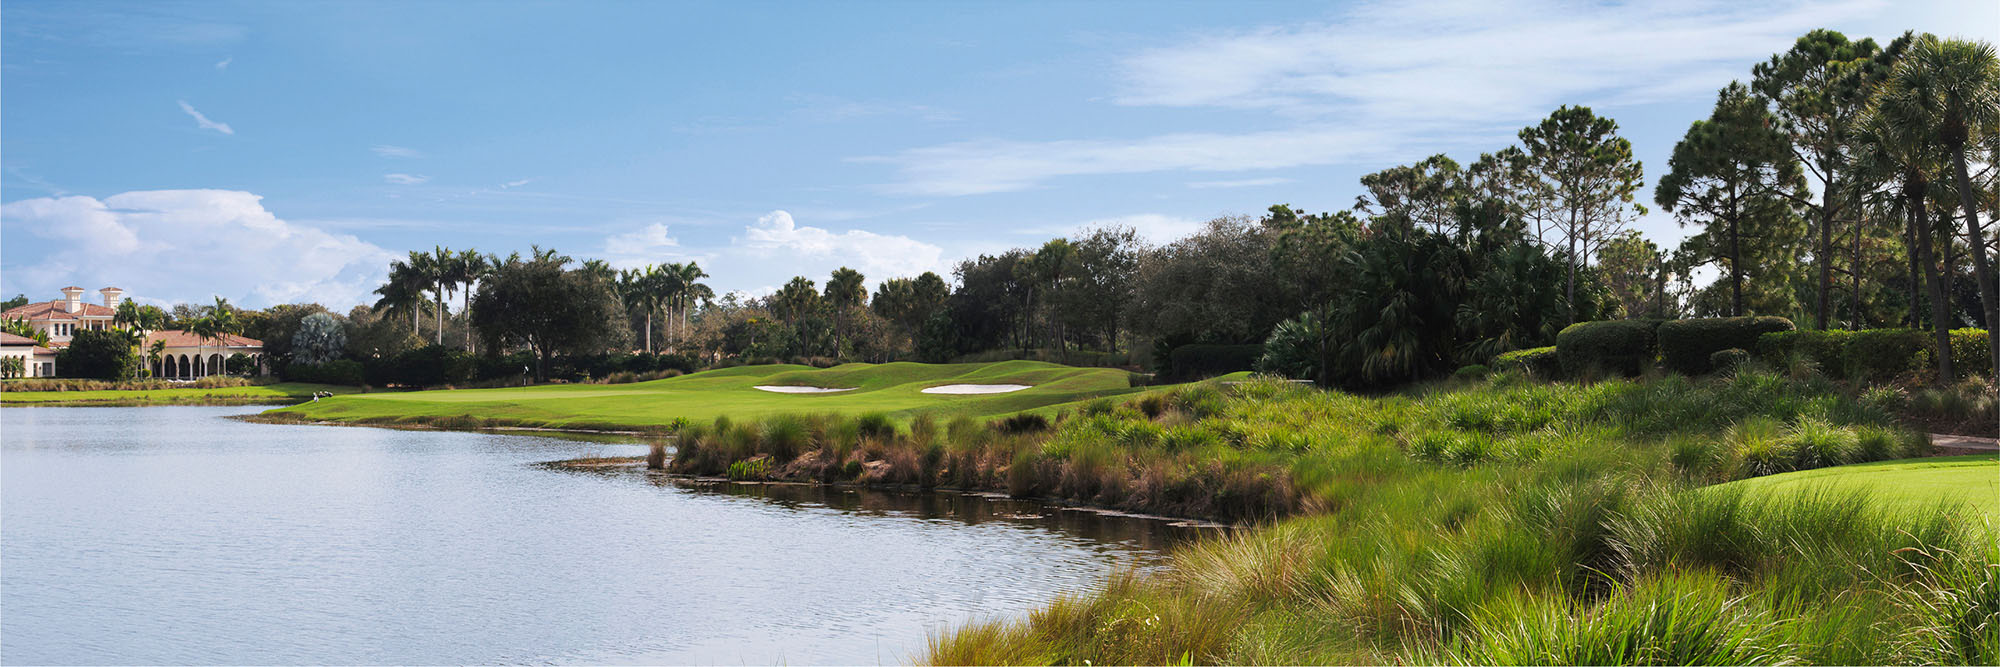 Golf Course Image - Mirasol Sunset No. 14